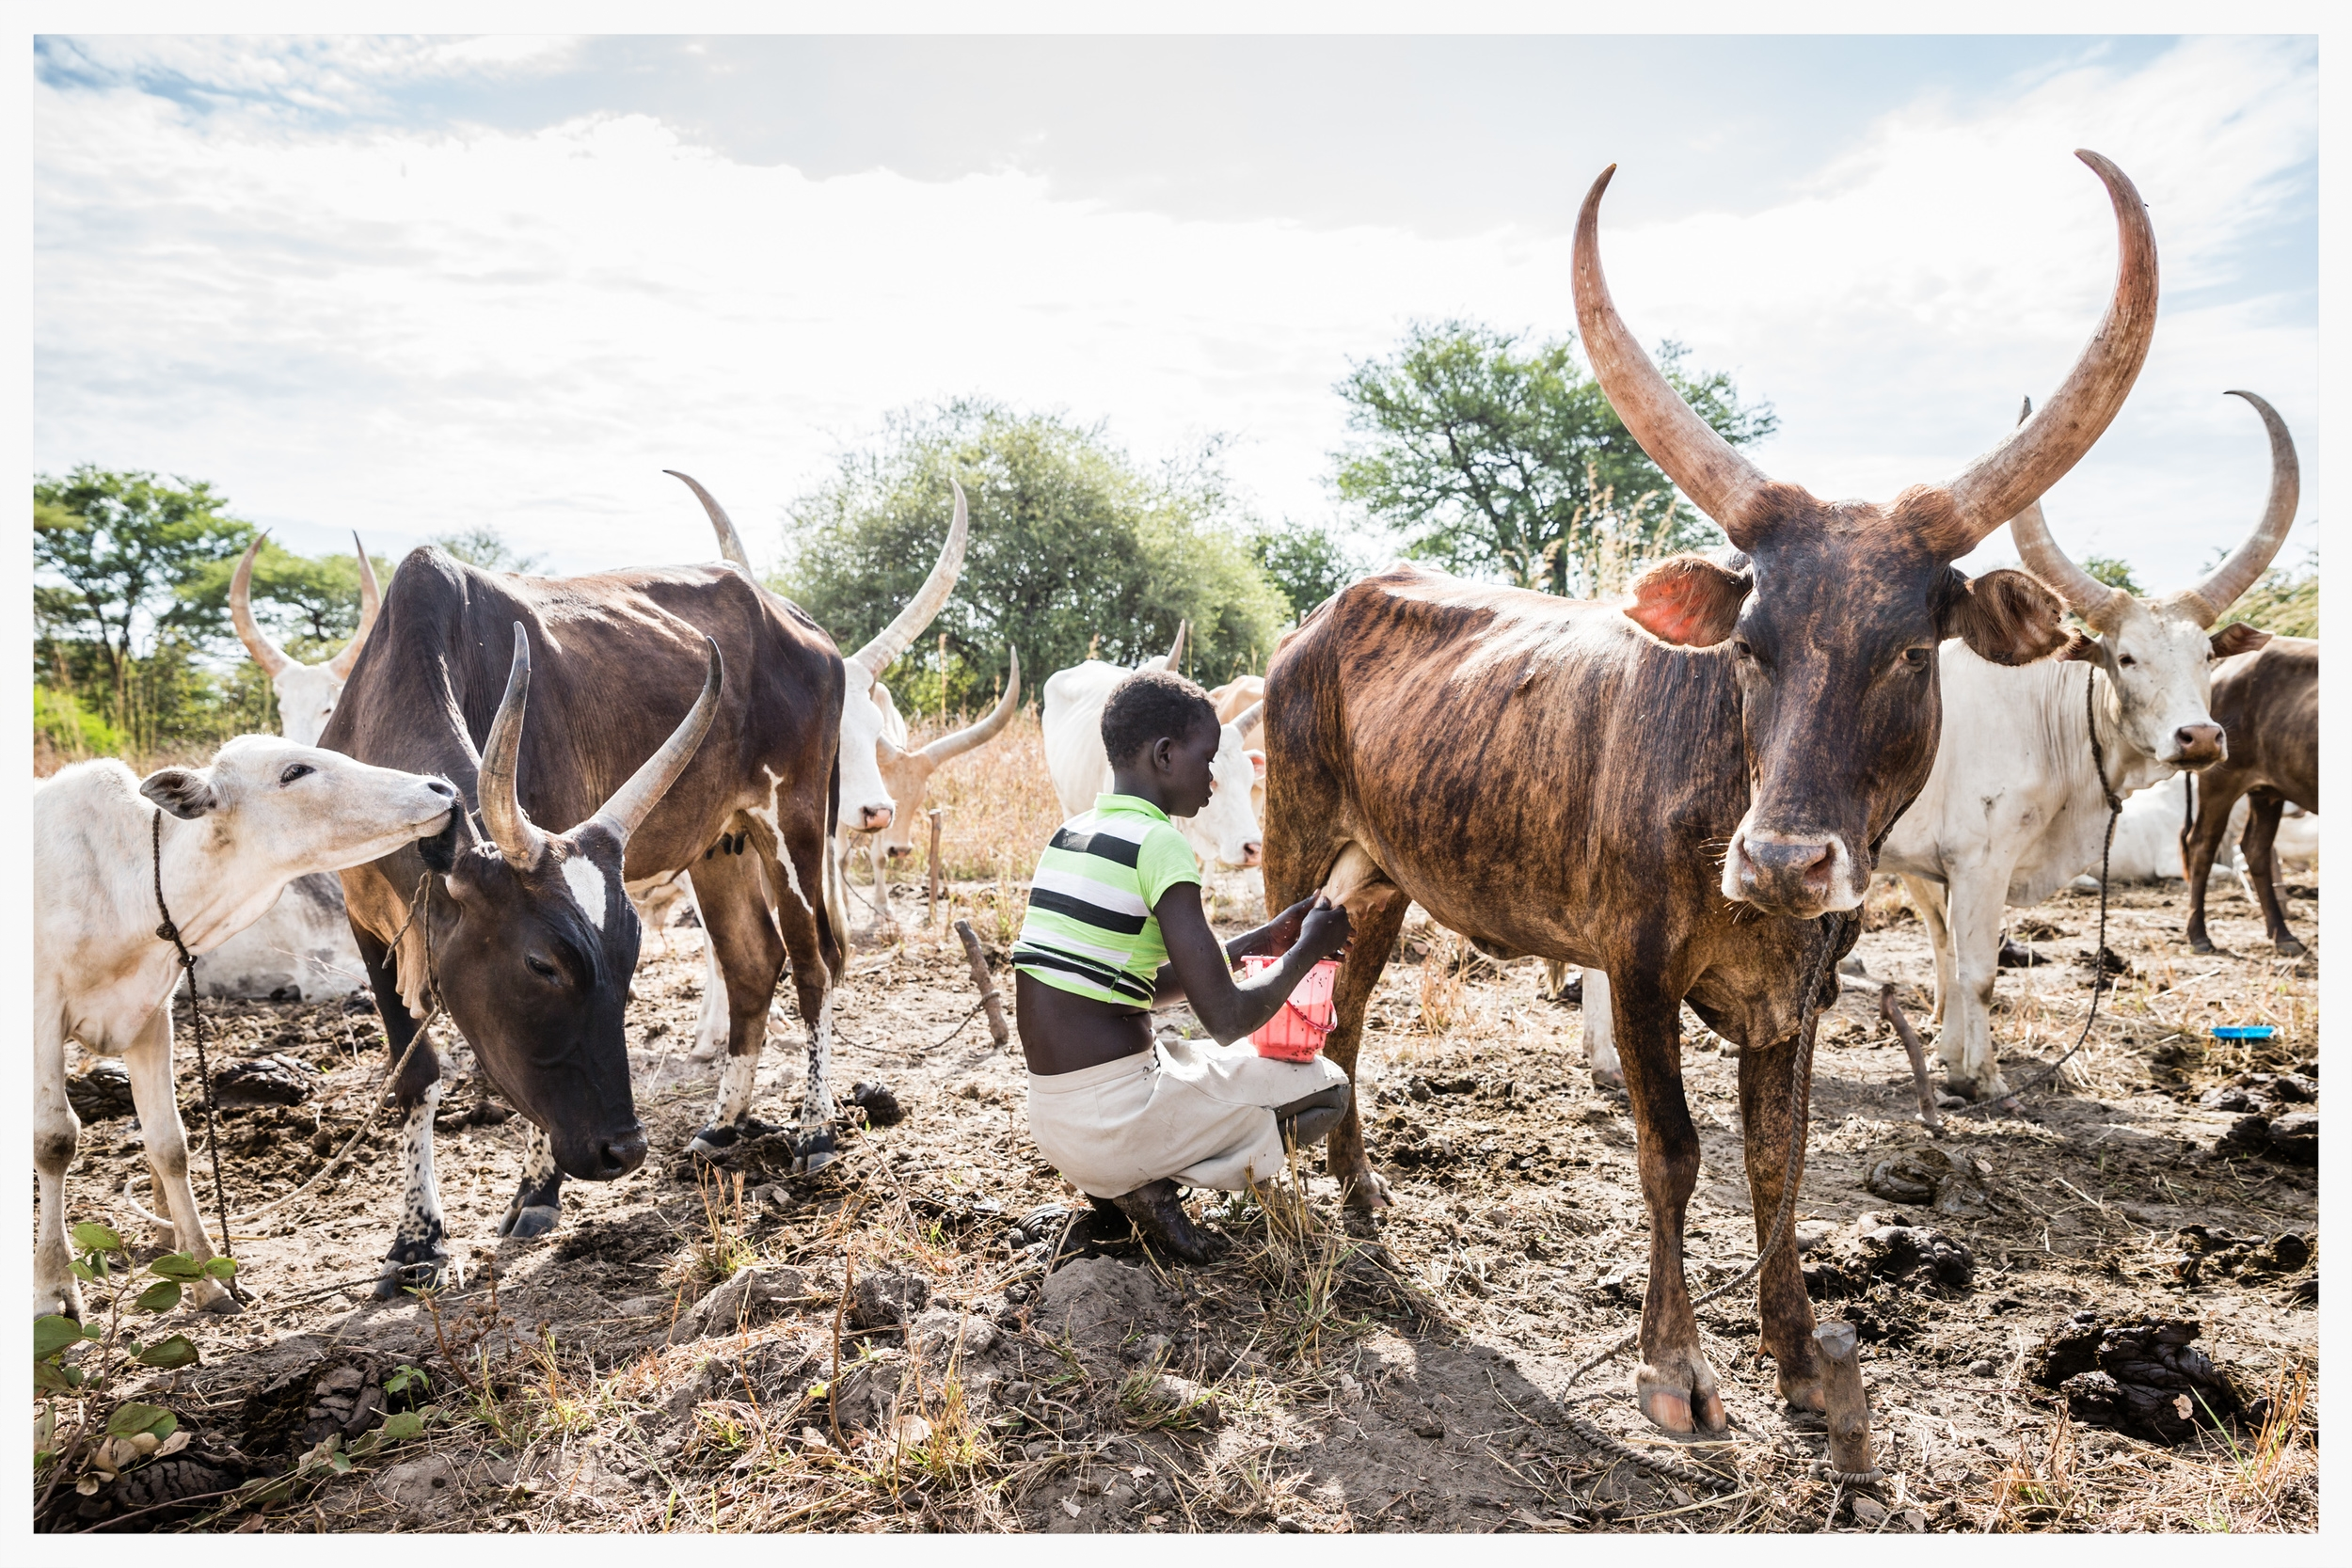 Milking cows, Lakatoc cattle camp, Tonj North, South Sudan  . Photo © Marcus Perkins